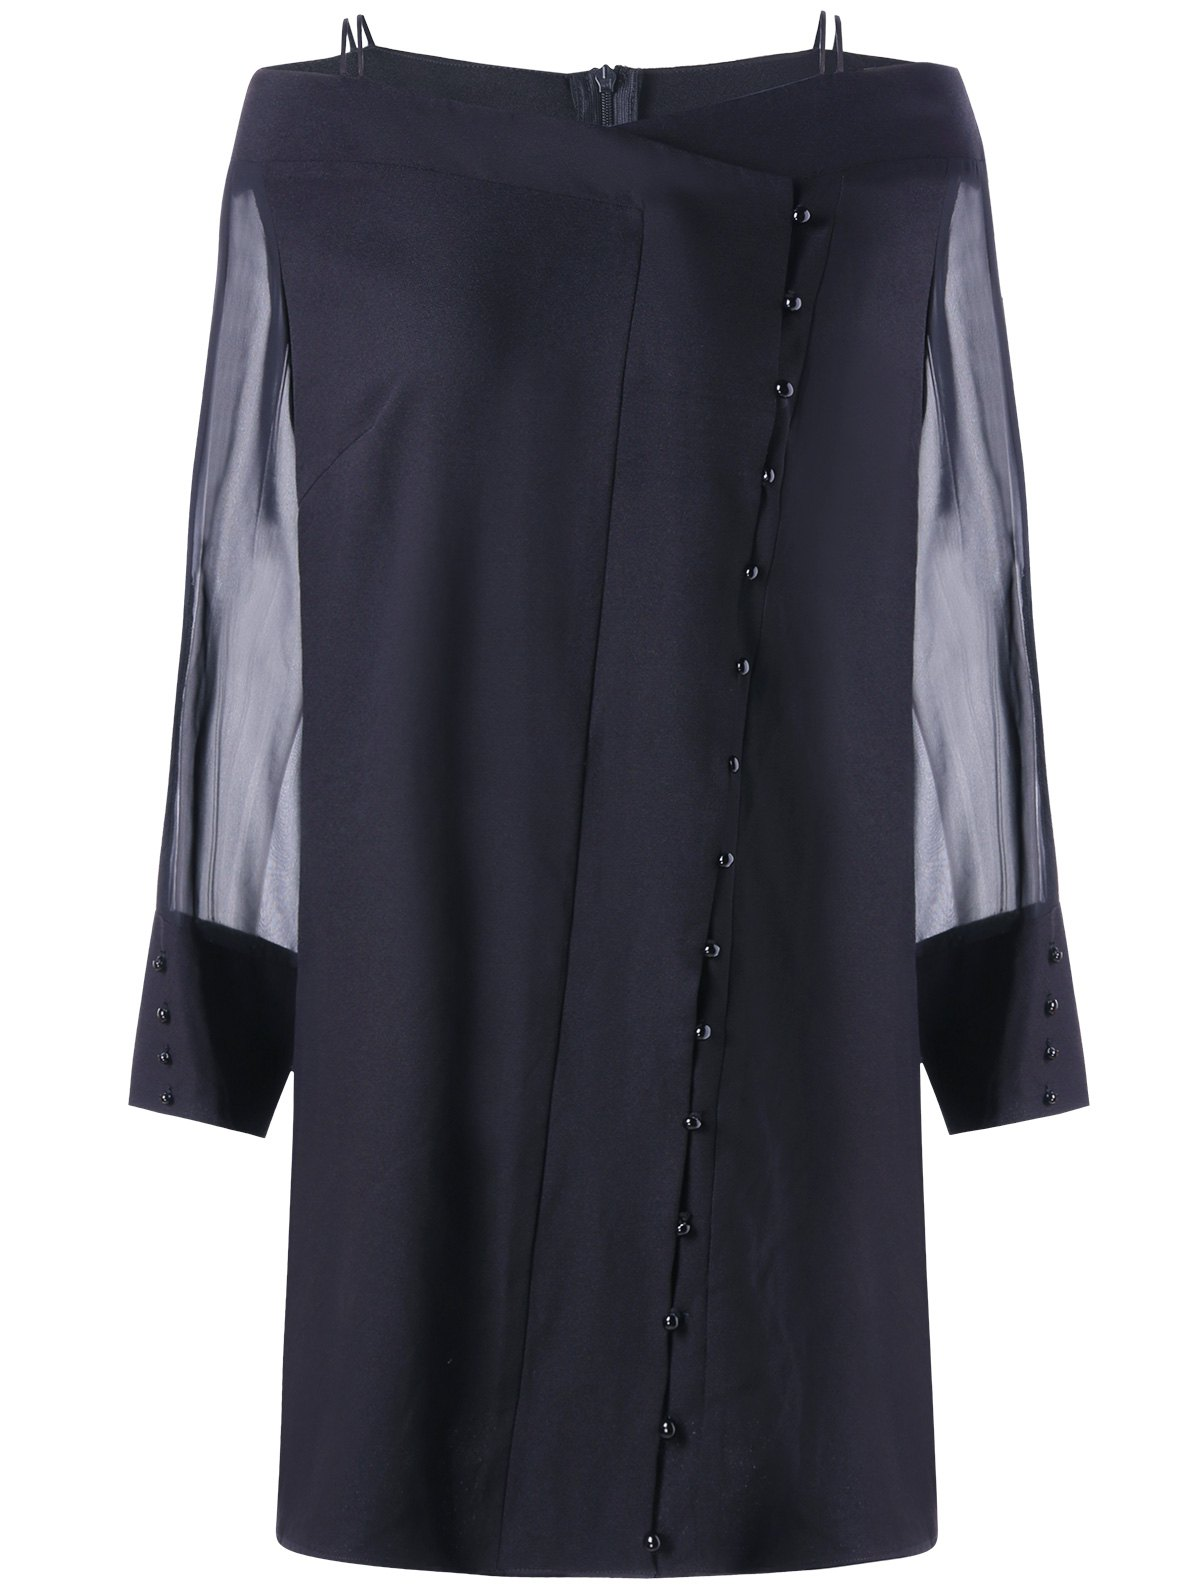 Sheer Long Sleeve Button Plus Size Dress - BLACK XL